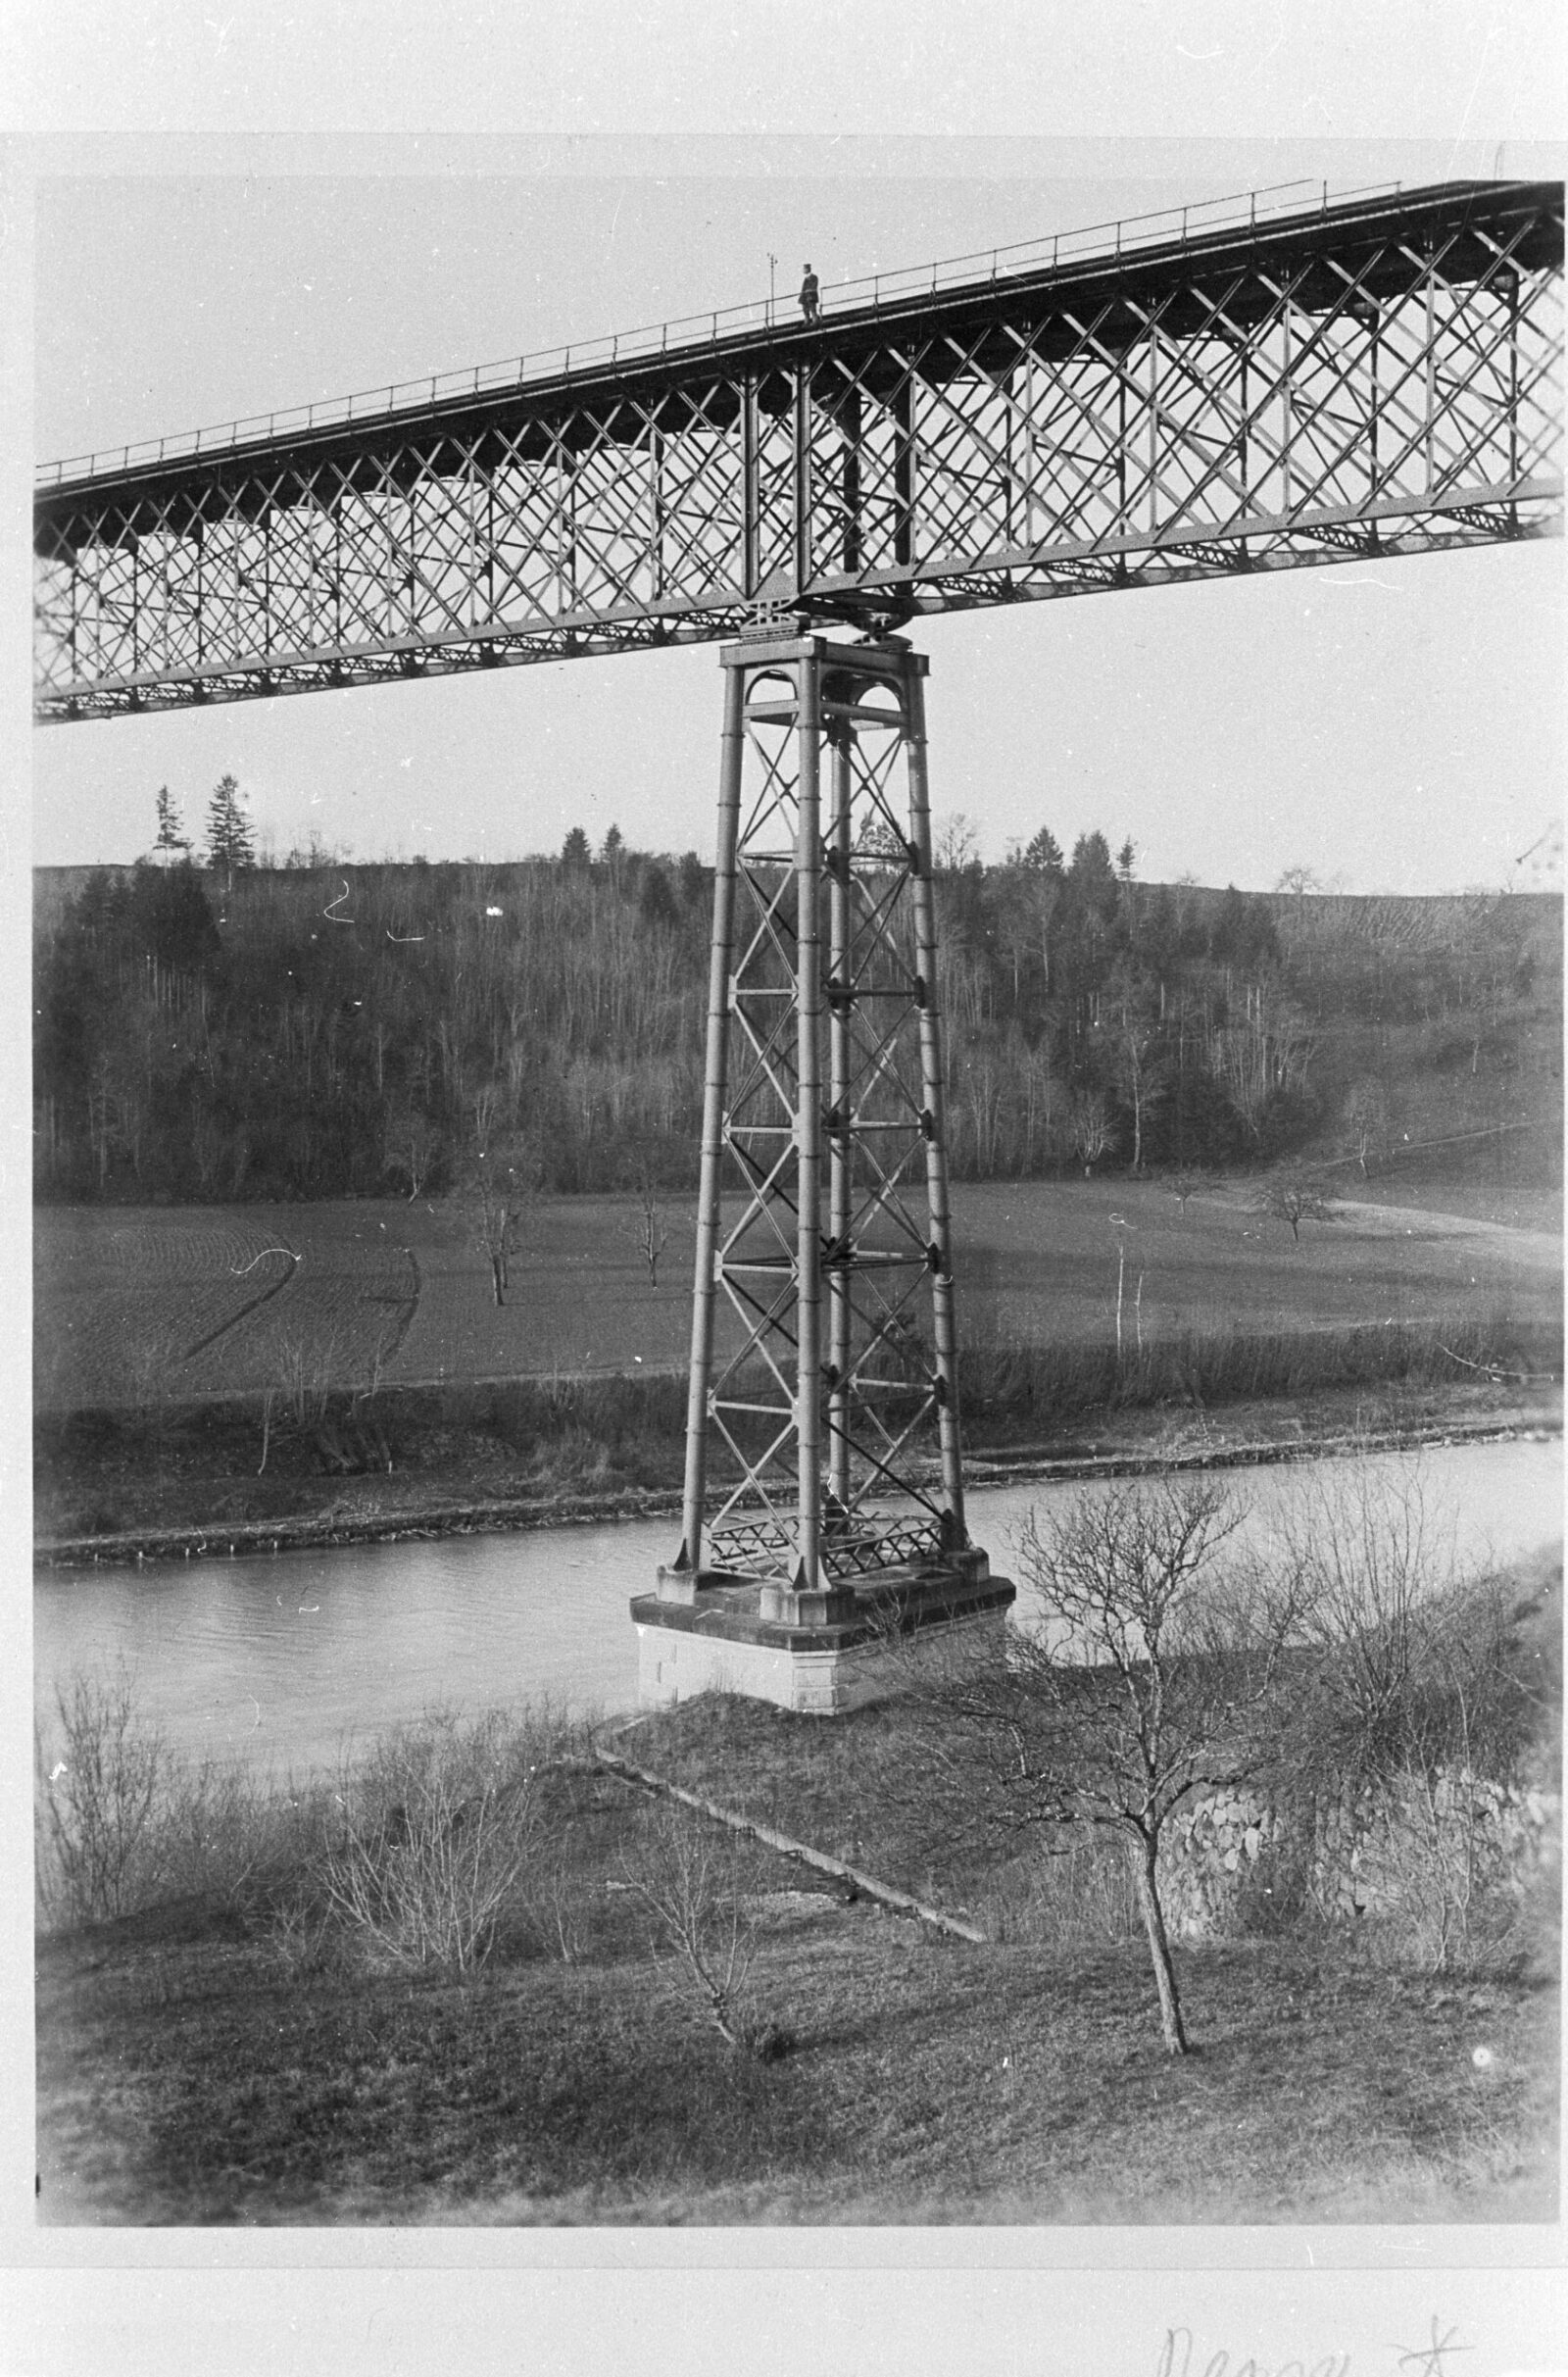 The Thur-Ossingen Bridge near Stein am Rhein, which opened in 1875, was one of Europe's first railway bridges with wrought-iron supporting pillars. As a precaution, the Swiss Federal Railways closed the listed bridge in 2021 in order to have its structural safety tested by ETH experts.